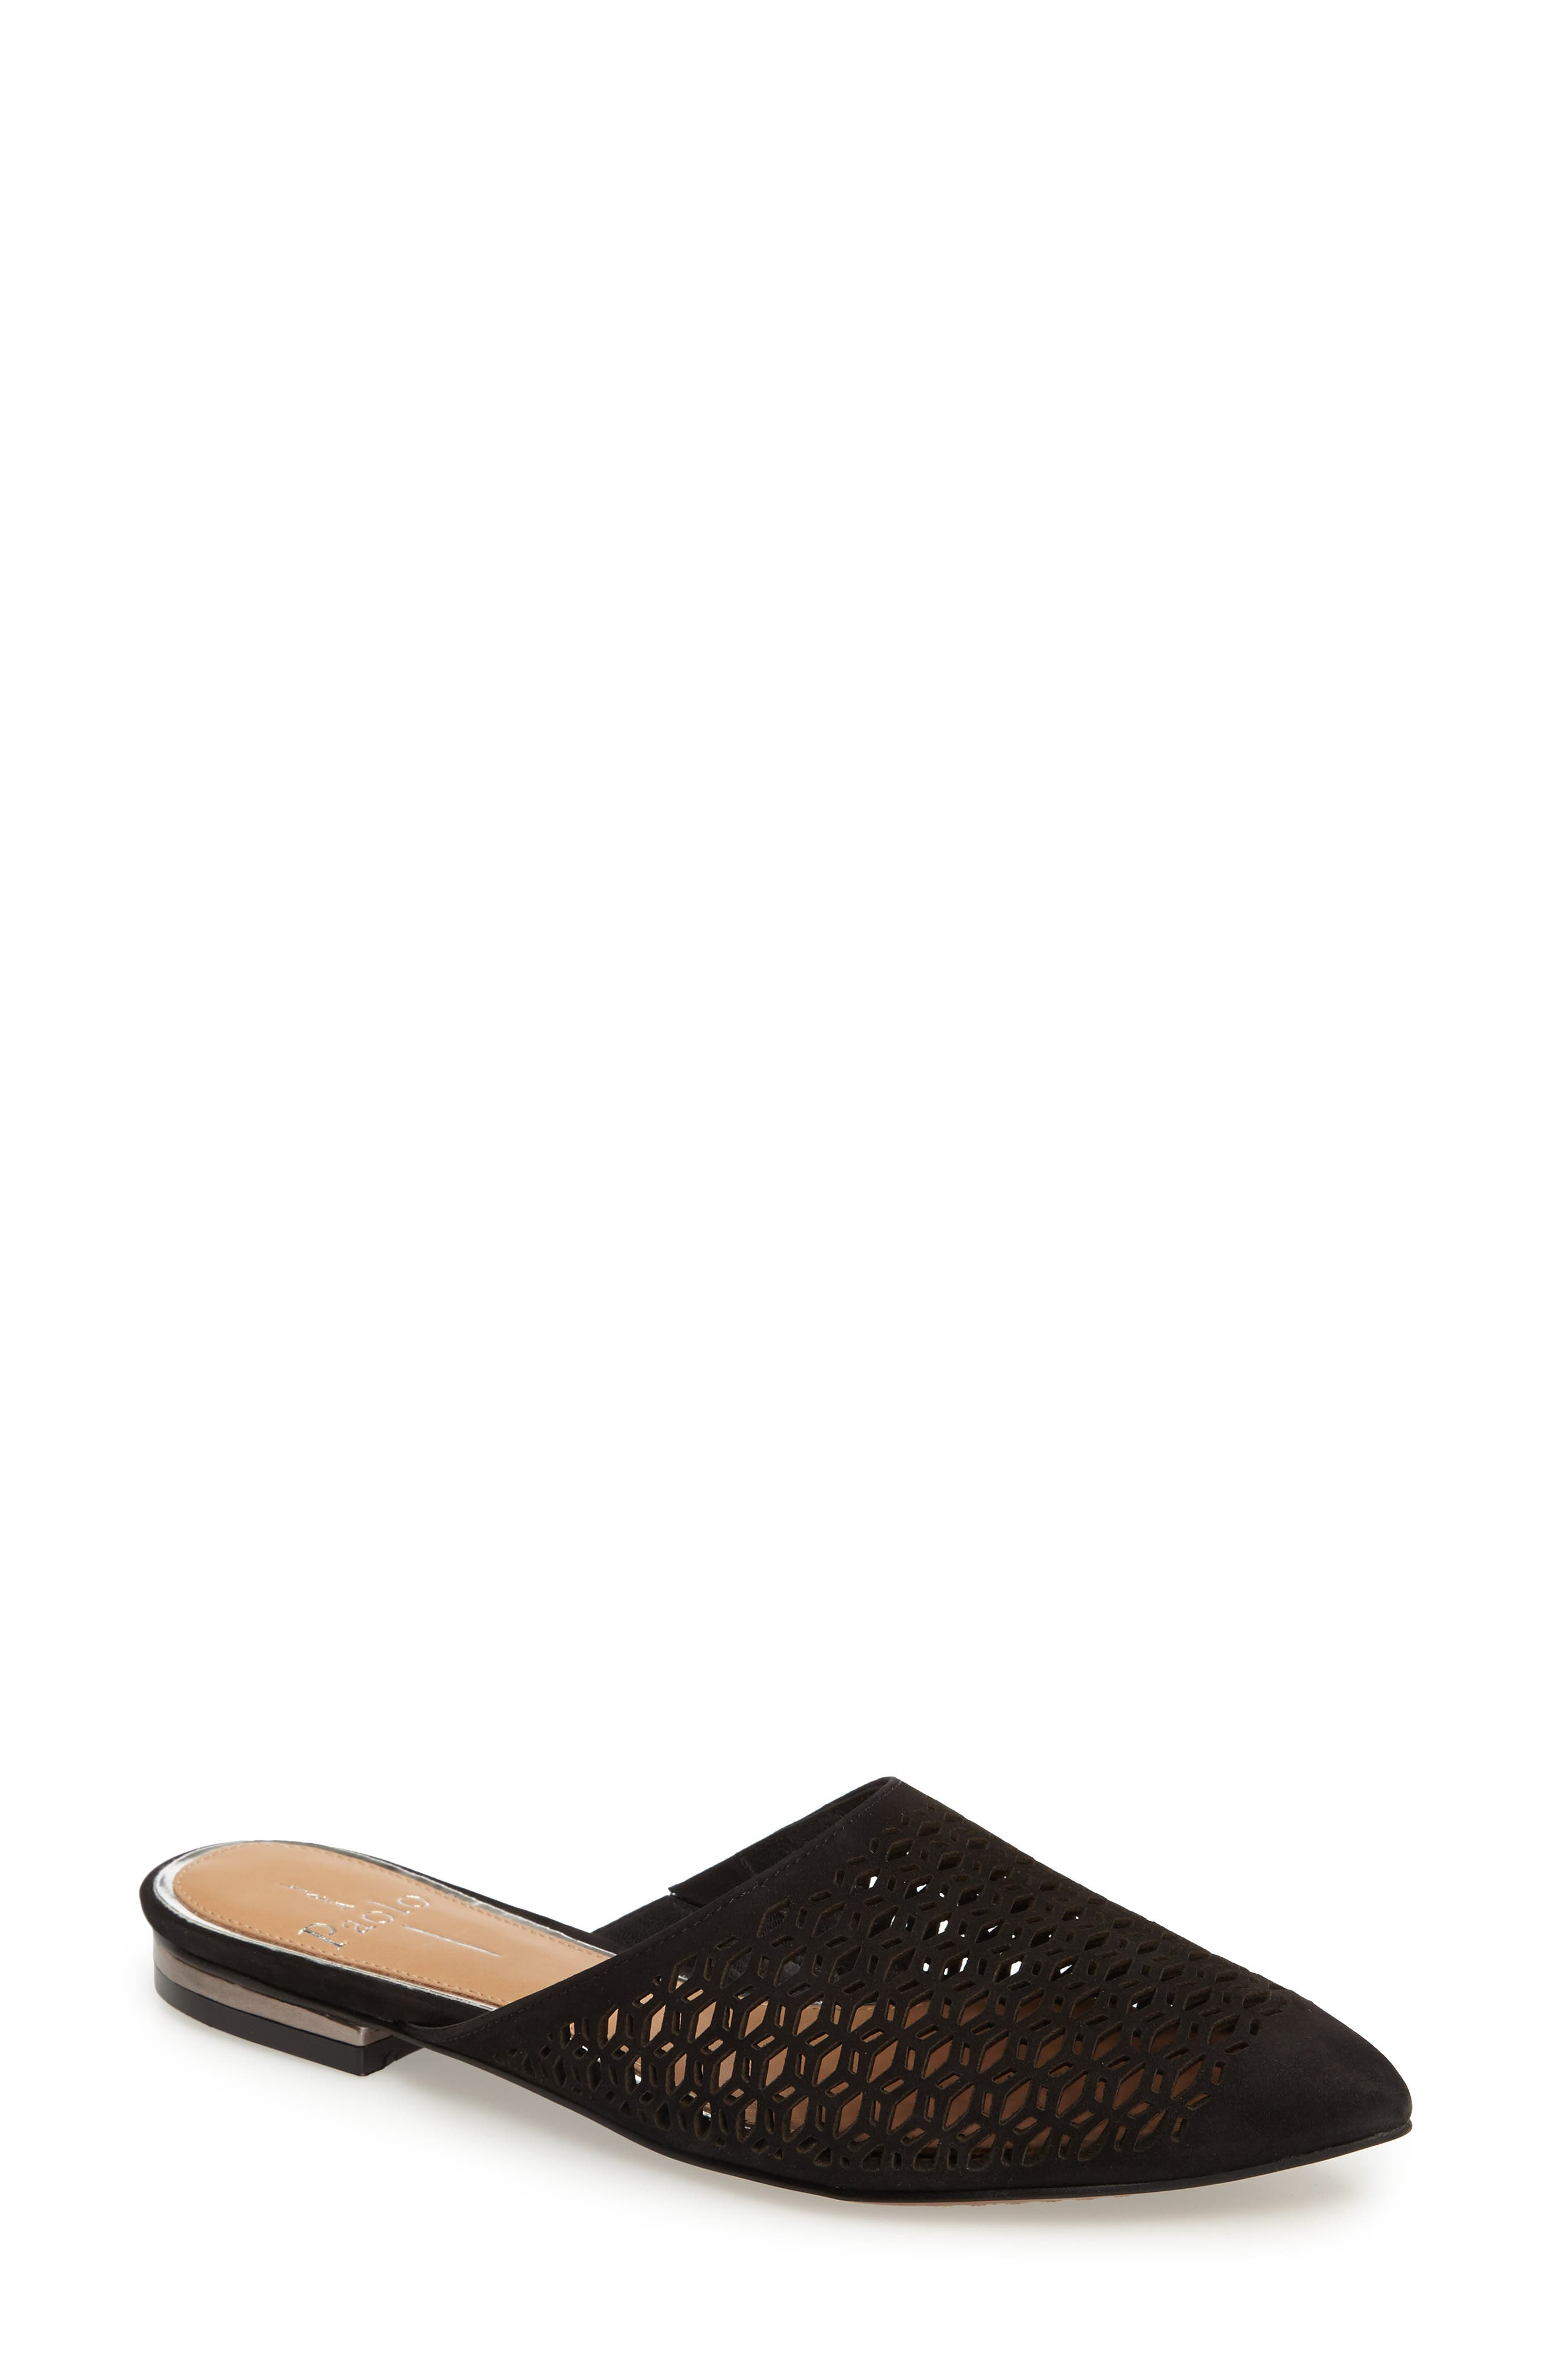 Alternate Image 1 Selected - Linea Paolo Daisy Perforated Mule (Women)